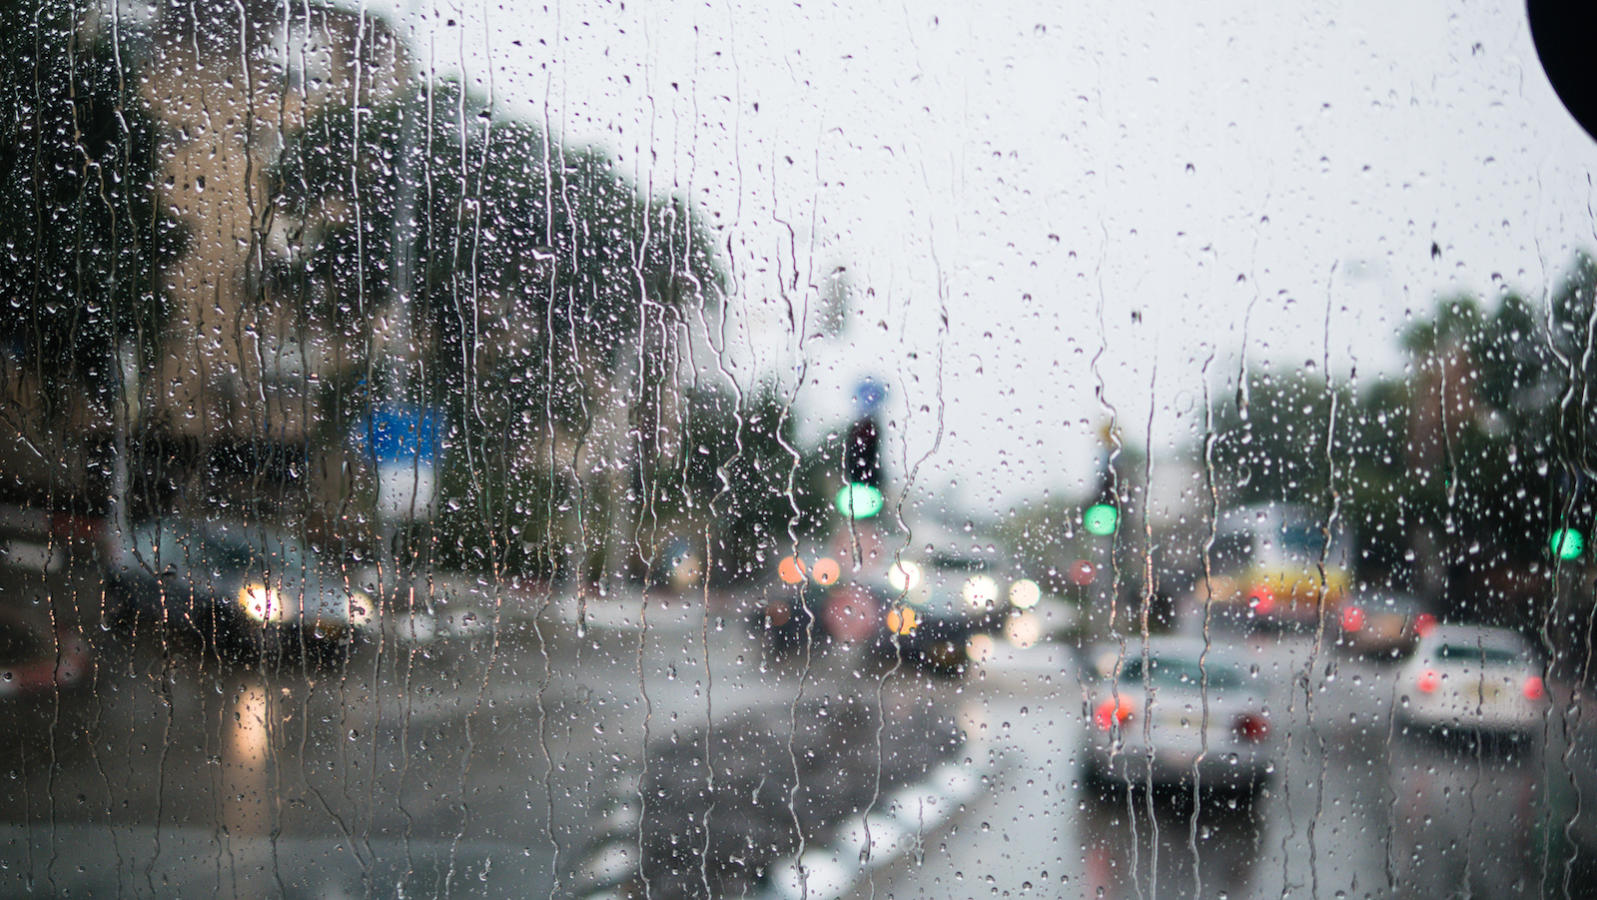 Shemini Atzeret Prayer for Rain: Sephardic Tradition | My